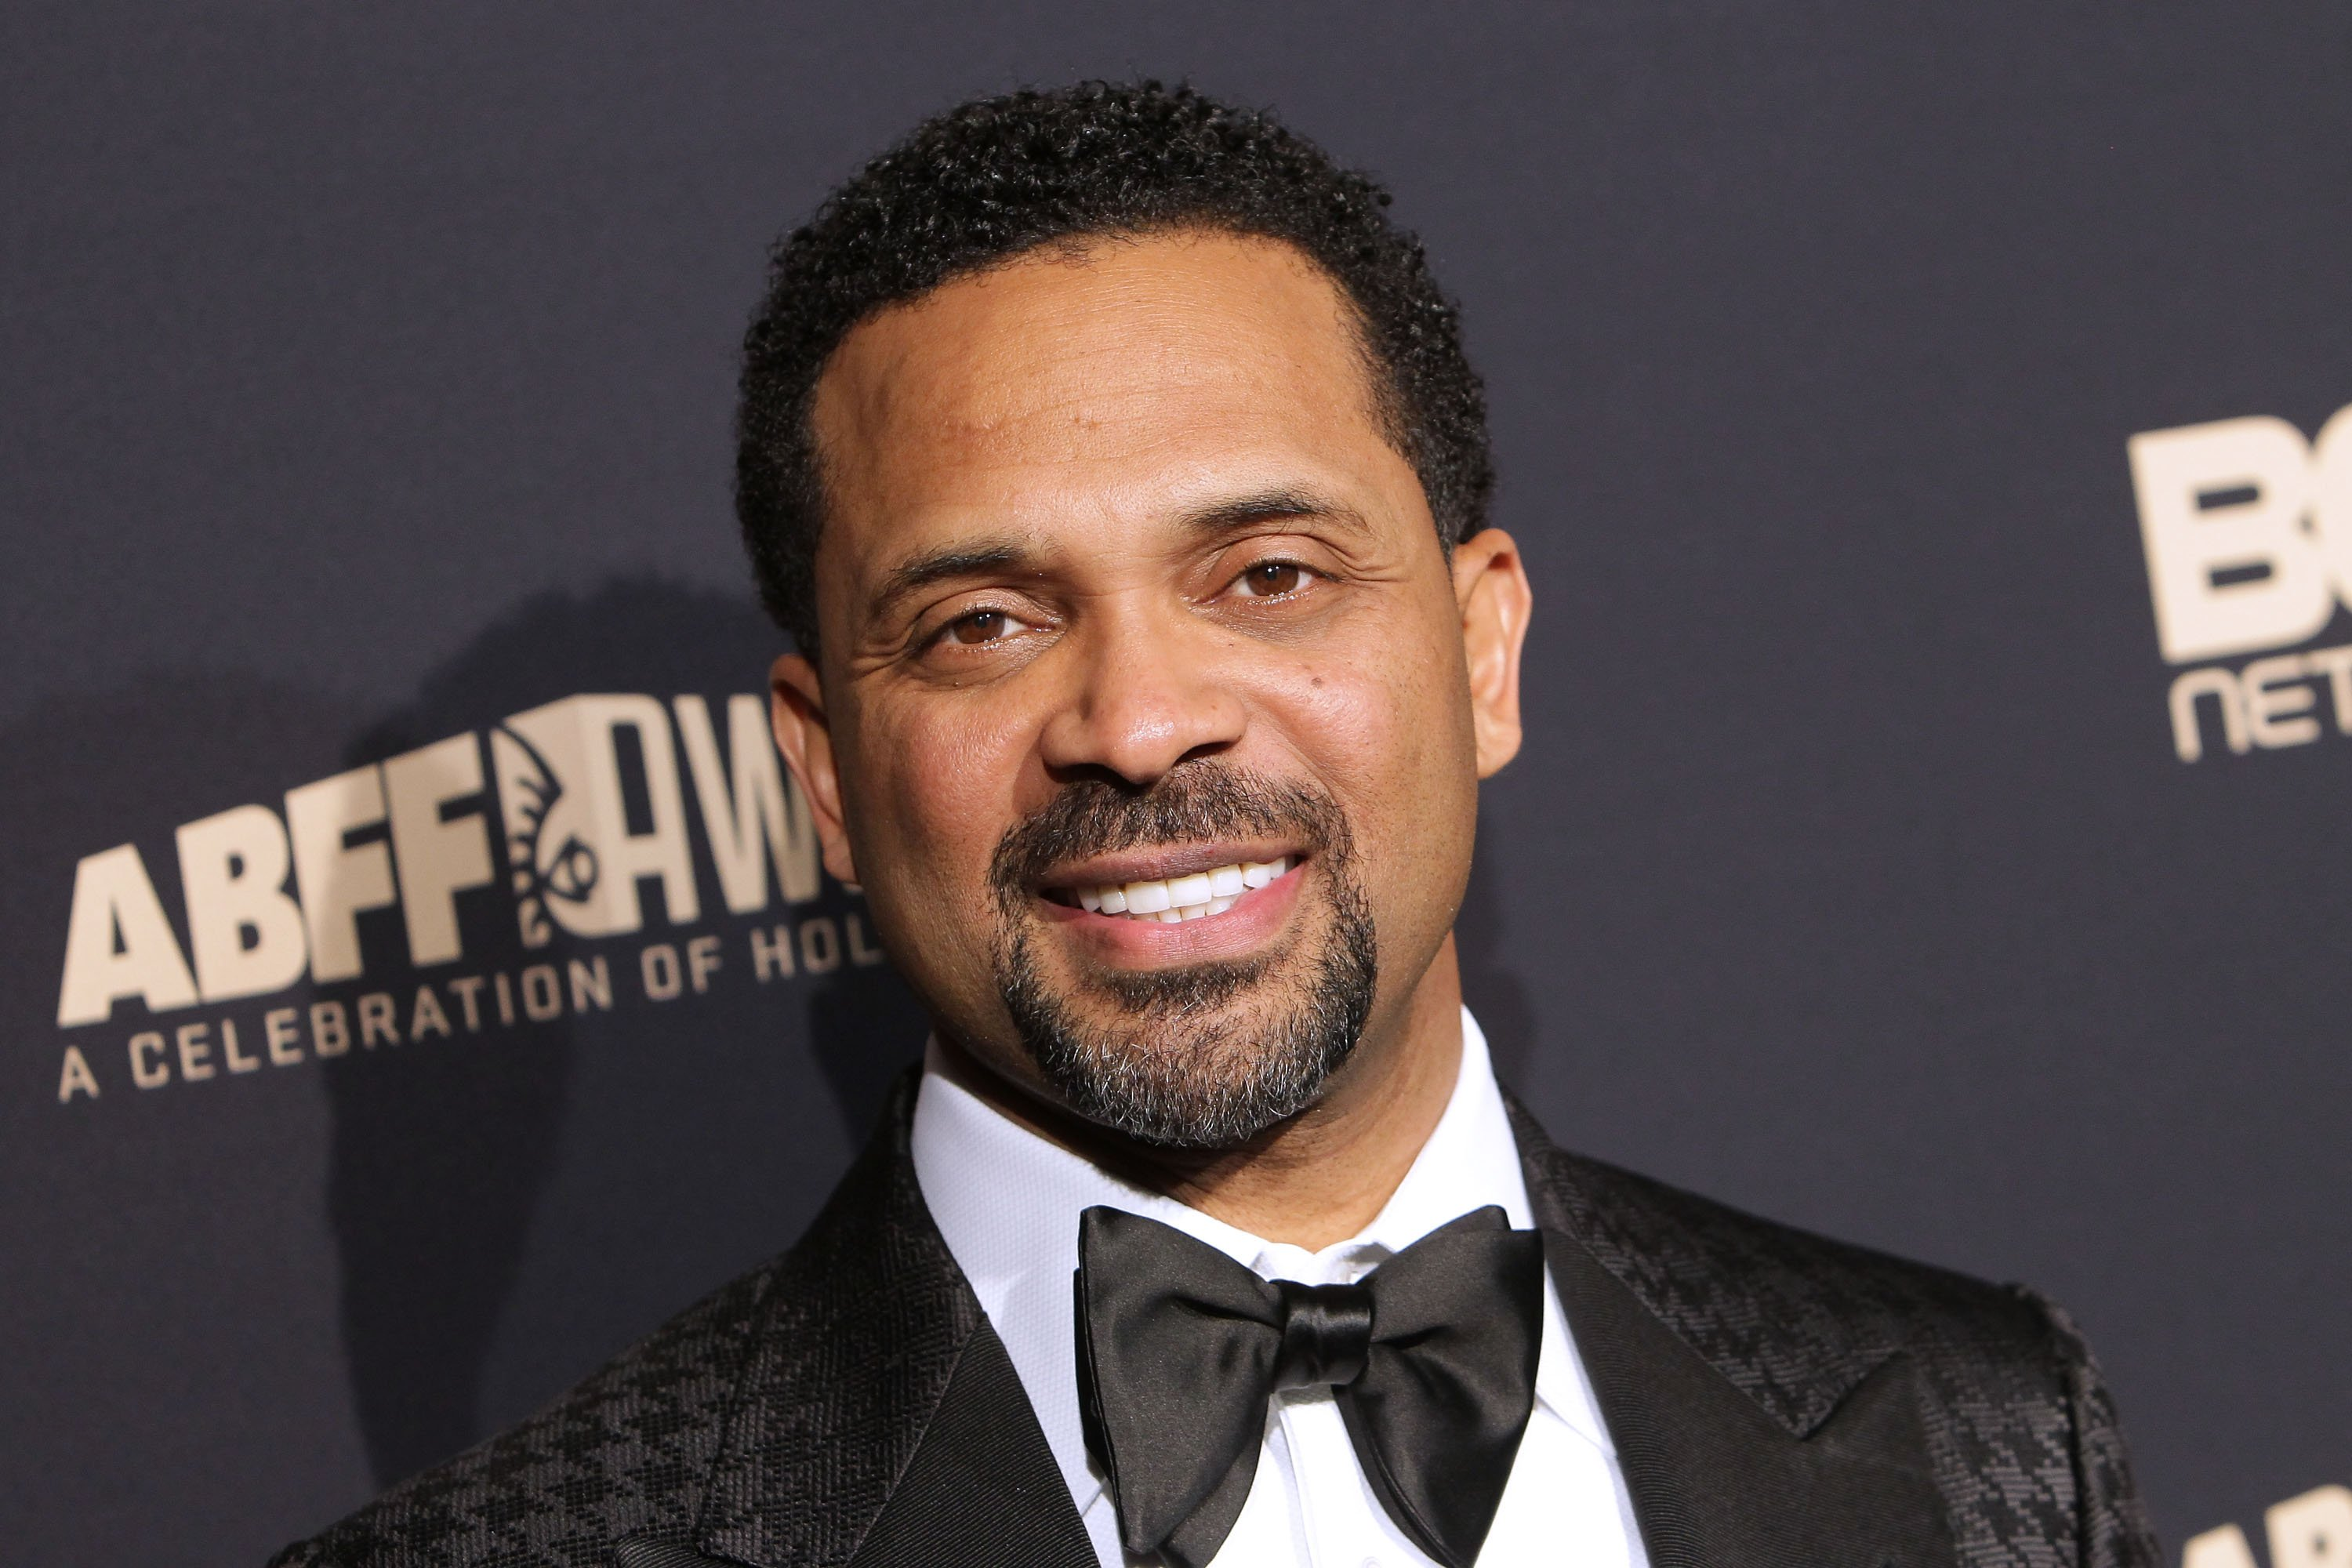 Mike Epps arrived to the 2016 American Black Film Festival Awards Gala - Arrivals at The Beverly Hilton Hotel on February 21, 2016.   Photo: Getty Images